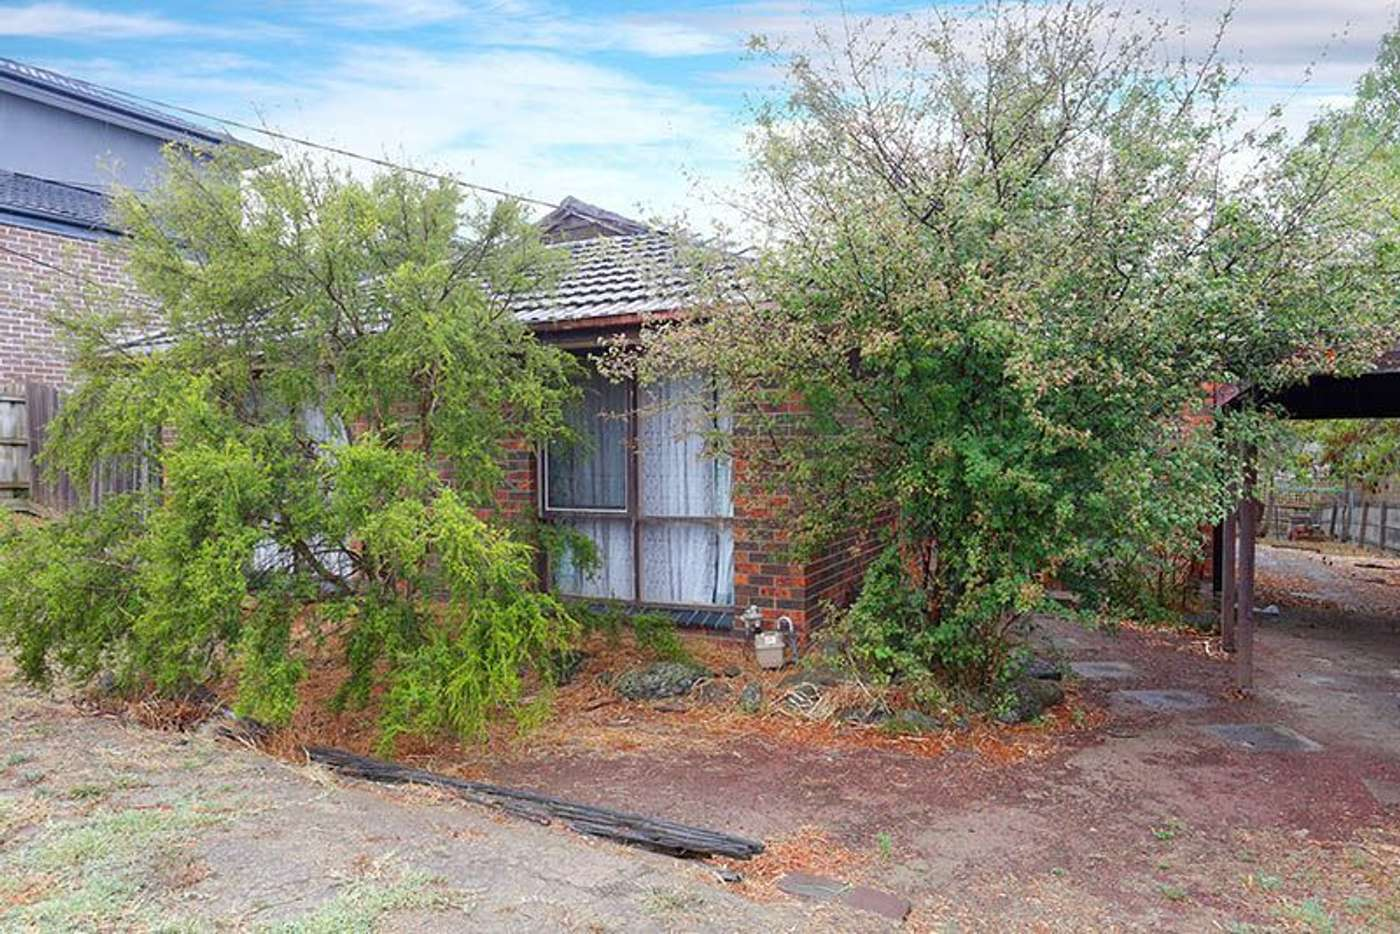 Main view of Homely house listing, 3 Overland Drive, Vermont South VIC 3133